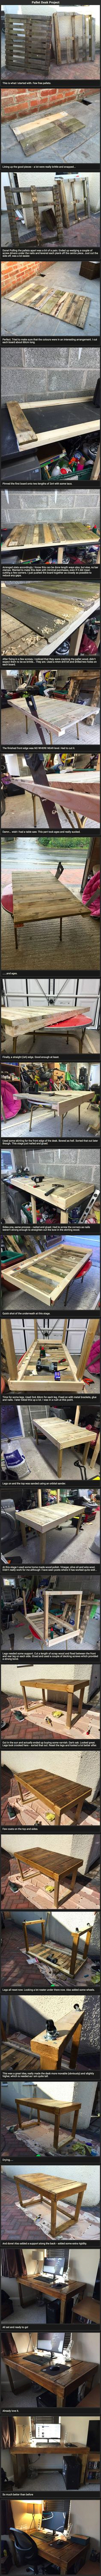 How one geek transformed old pallets into a sleek computer desk.